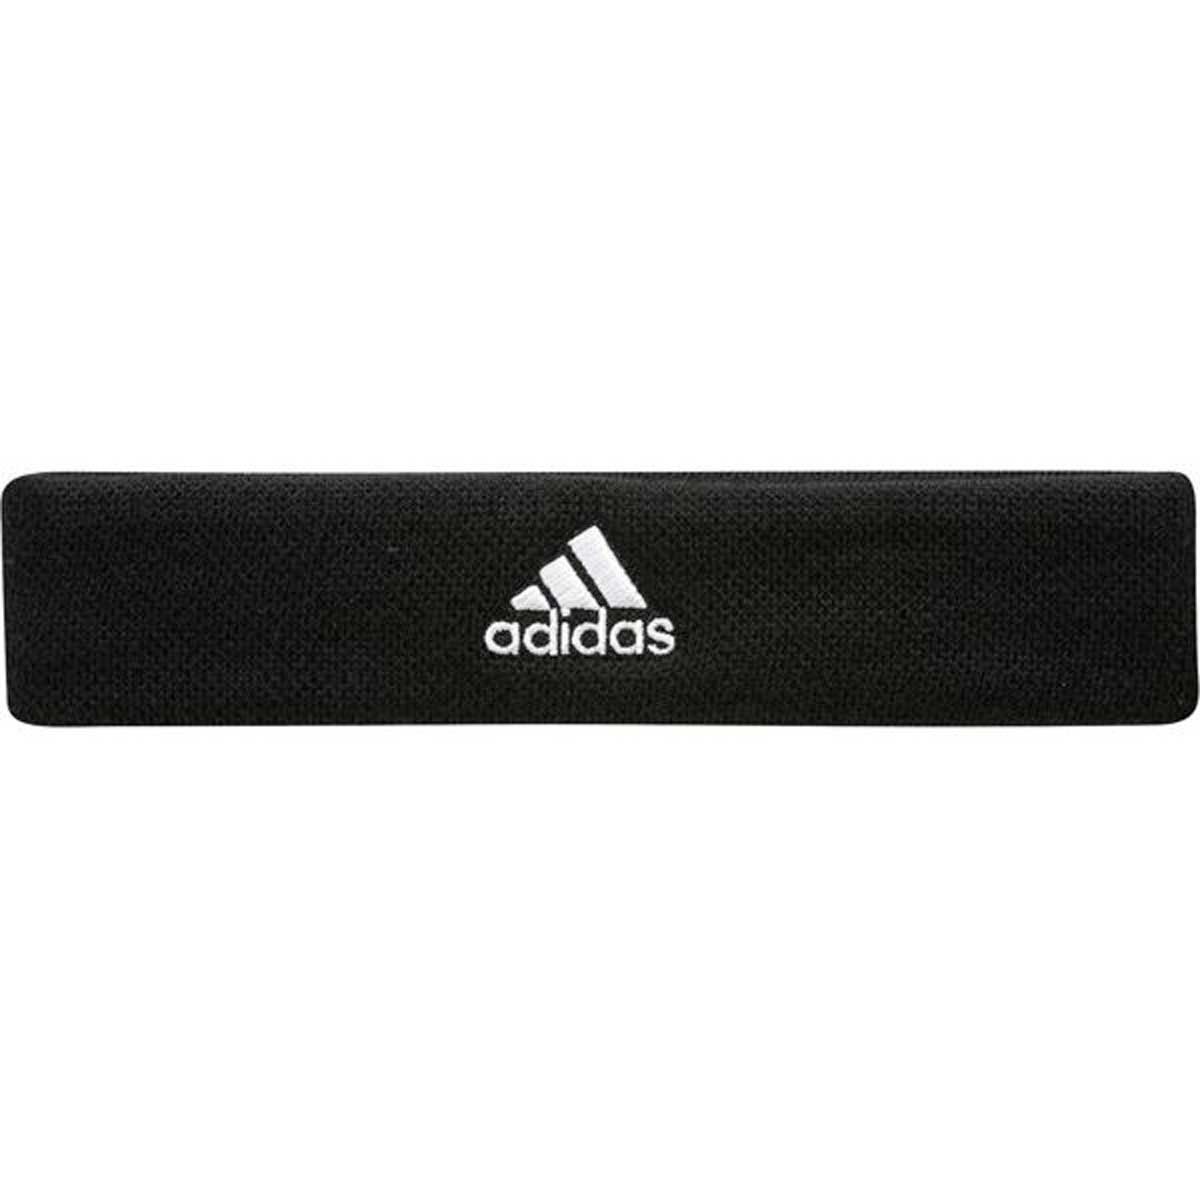 Buy Adidas Mens Tennis Headband (Black) Online at Lowest Price in India 64717646a0c